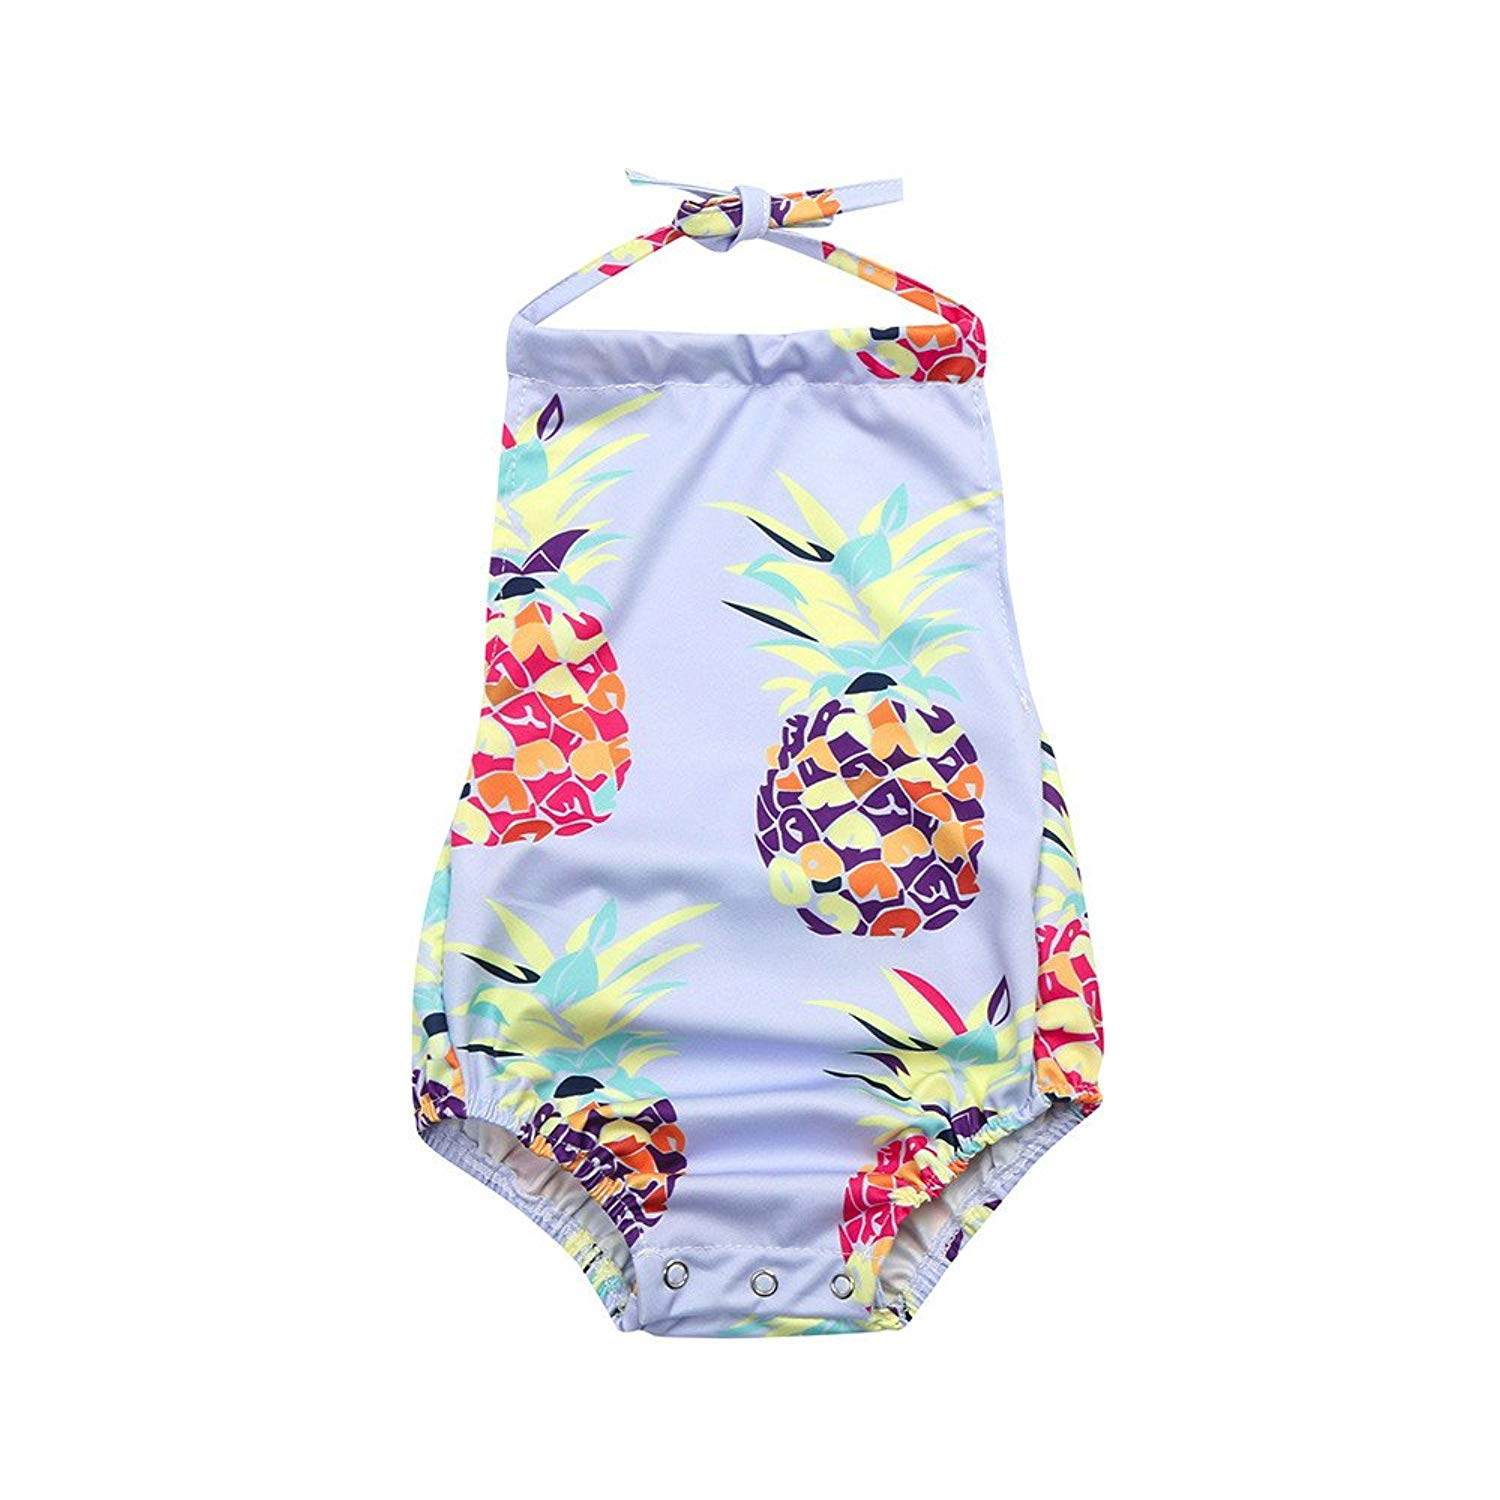 cfafe99f6c307 Get Quotations · Fartido Infrant Baby Girl Pineapple Print Swimwear  Backless Beach Clothes